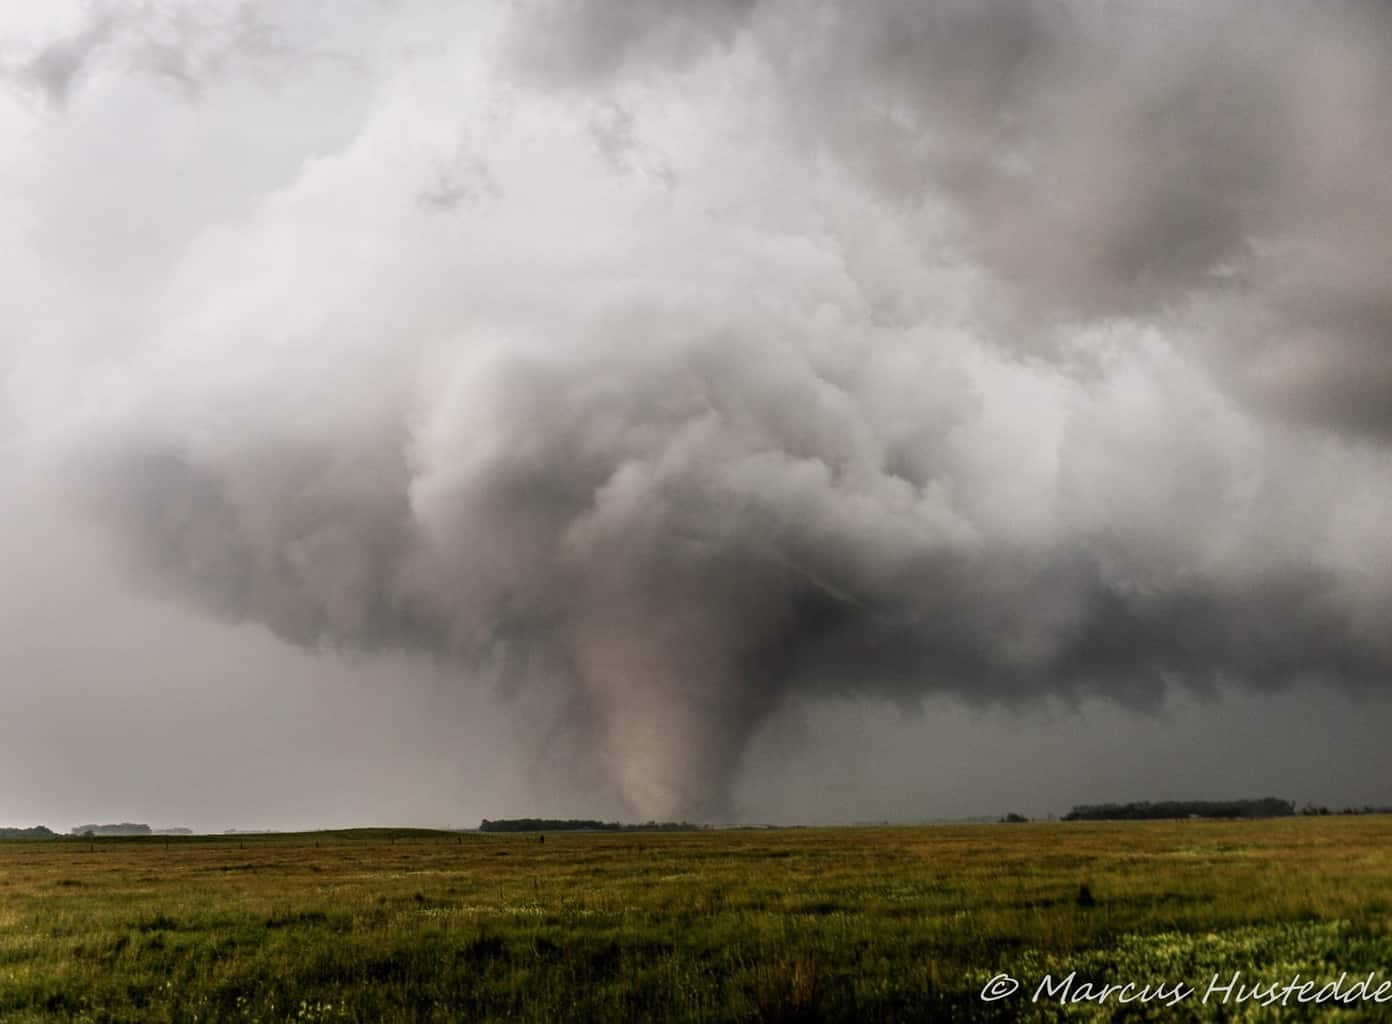 June 18, 2014 near Wessington Springs, SD